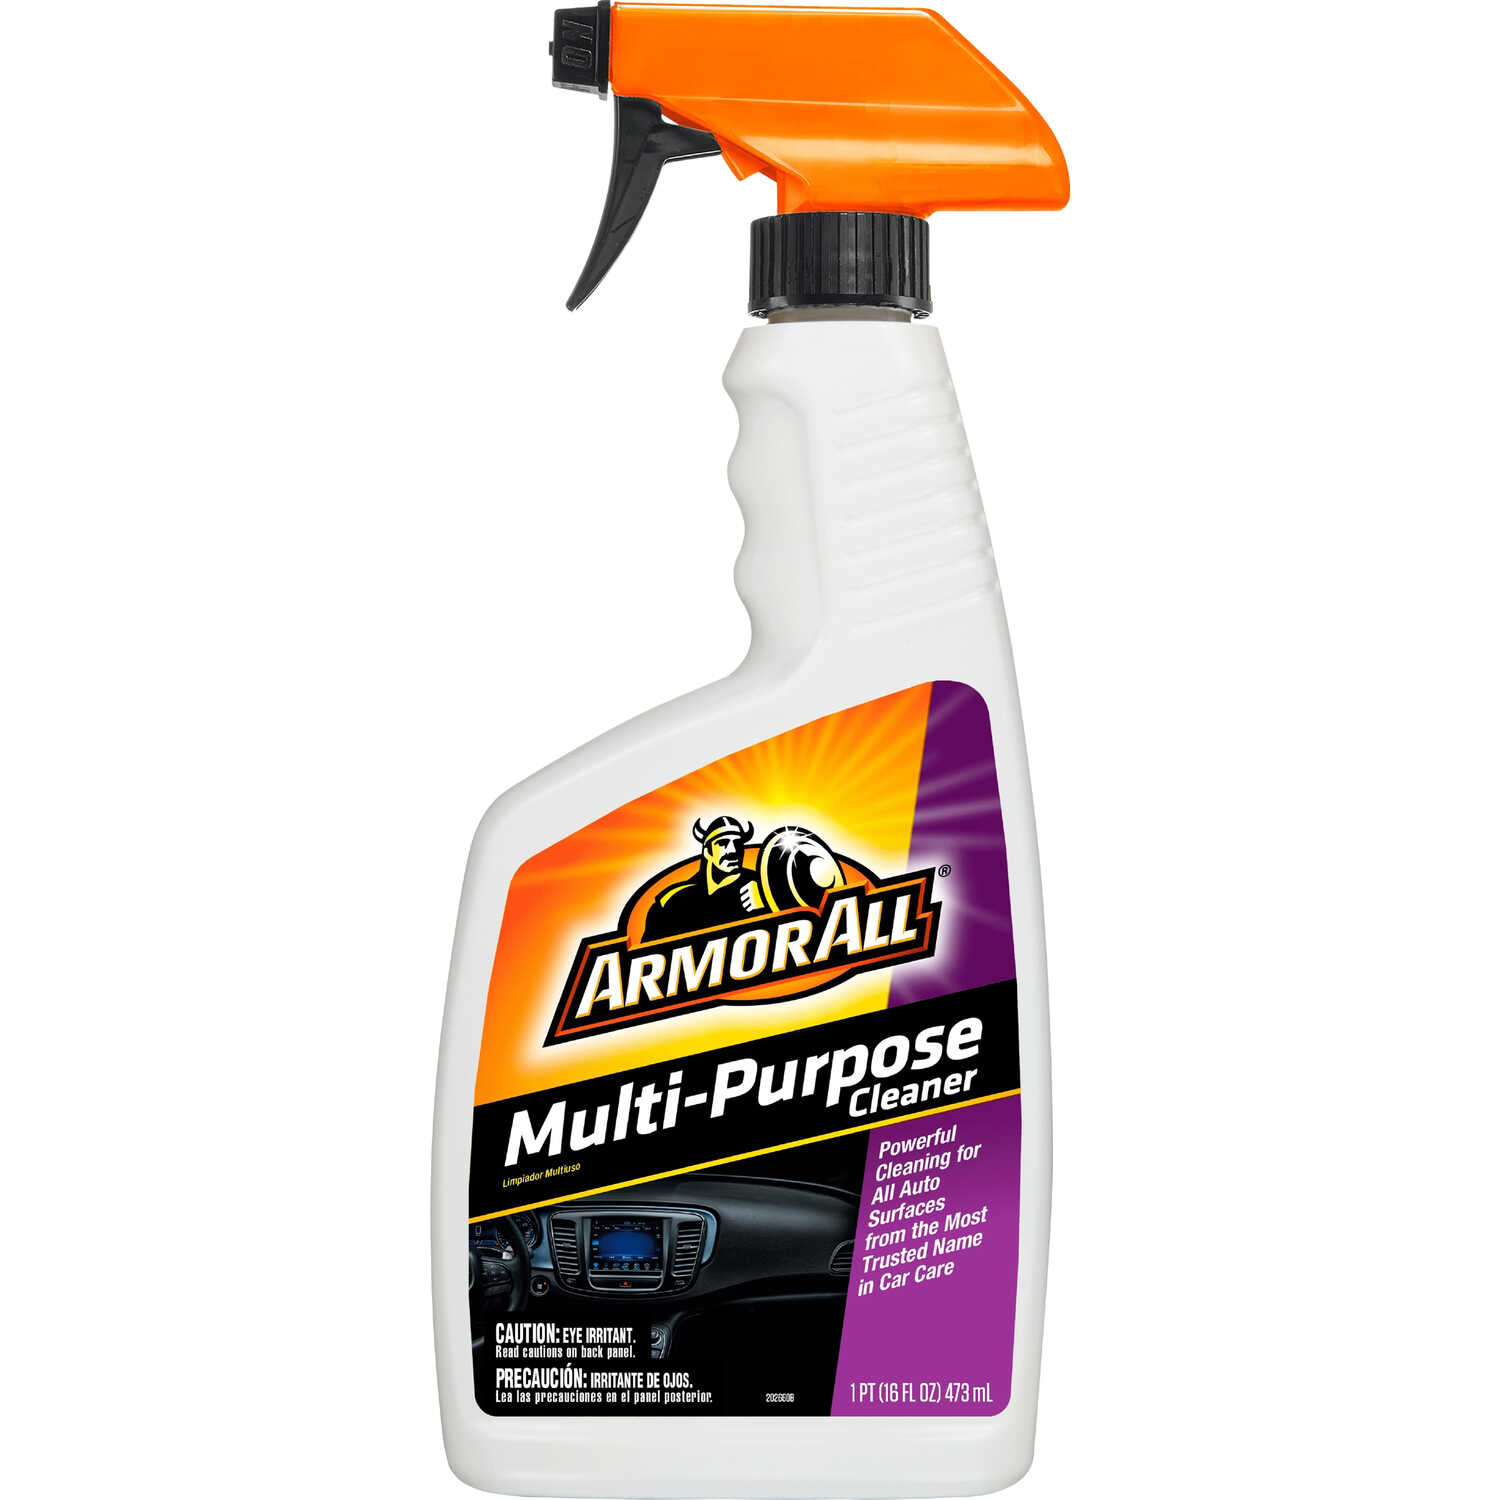 Armor All  Multi Purpose  Leather/Rubber/Vinyl  Cleaner/Conditioner  16 oz. Bottle